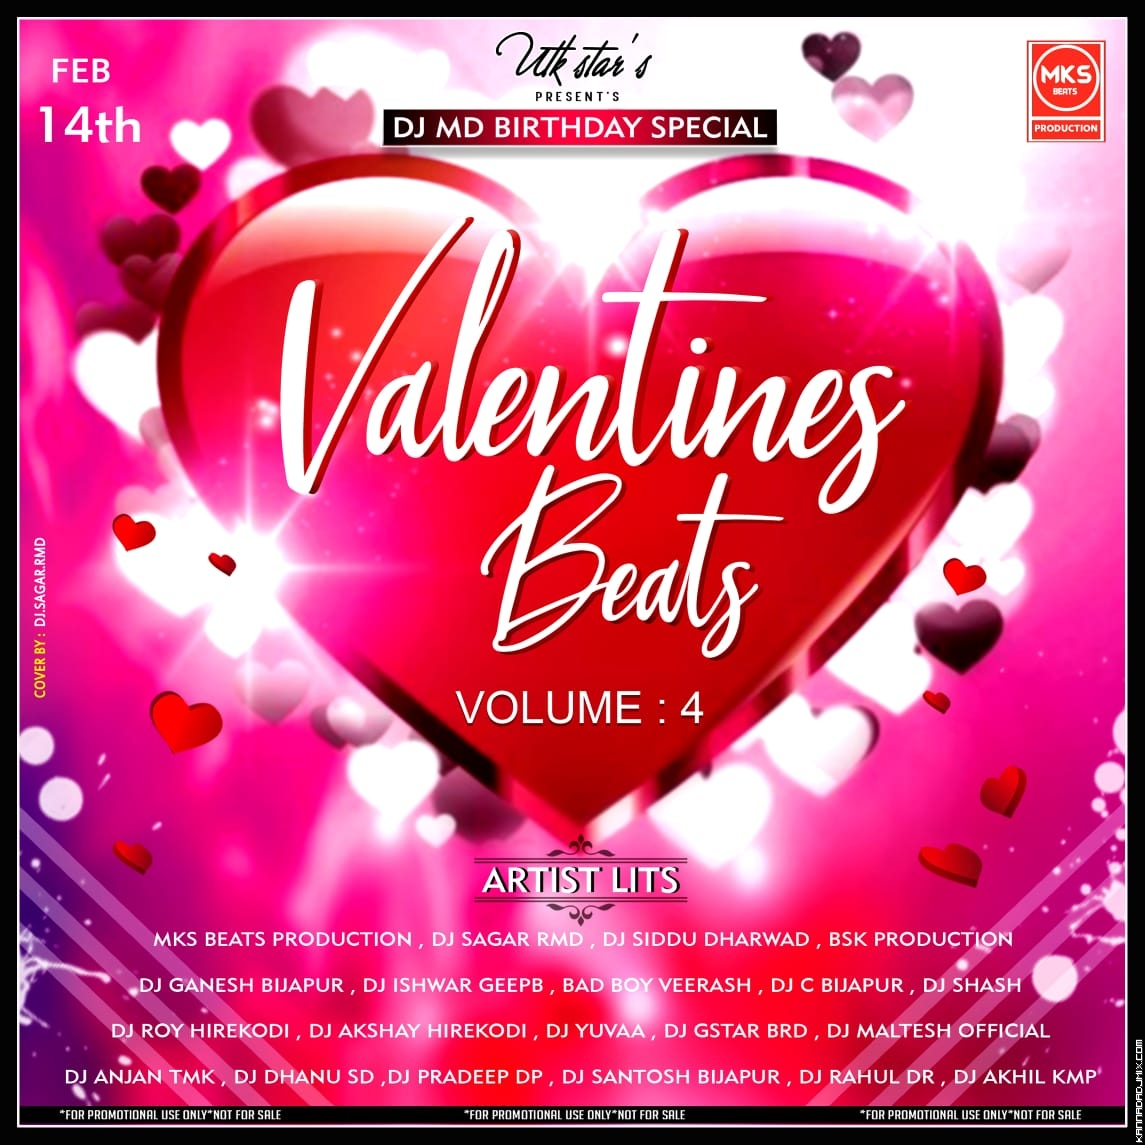 30-TITANIC HEROINE PURE LOVE REMIX -MKS BEATS PRODUCTION.mp3